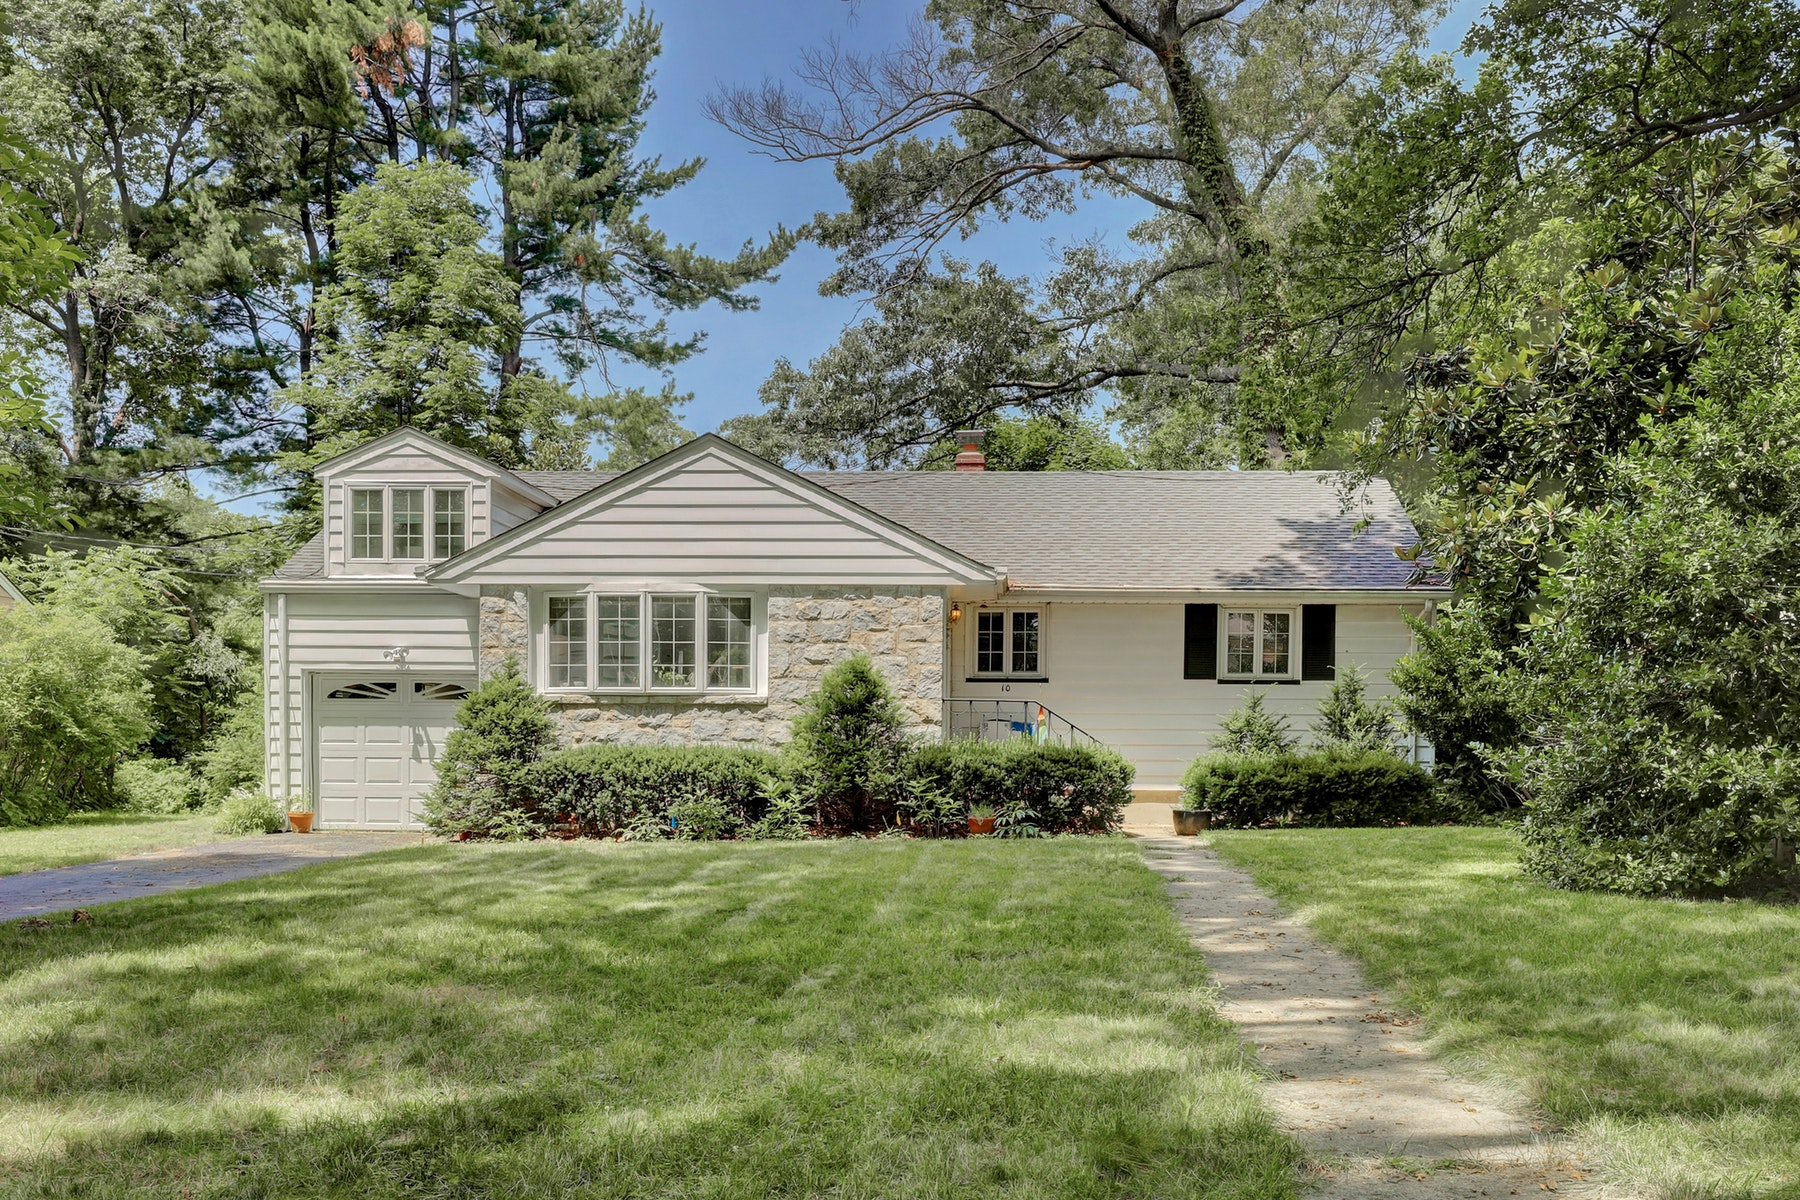 Single Family Homes for Sale at Lovely Ranch Style Home in Glen Rock 10 Brookfield Avenue Glen Rock, New Jersey 07452 United States